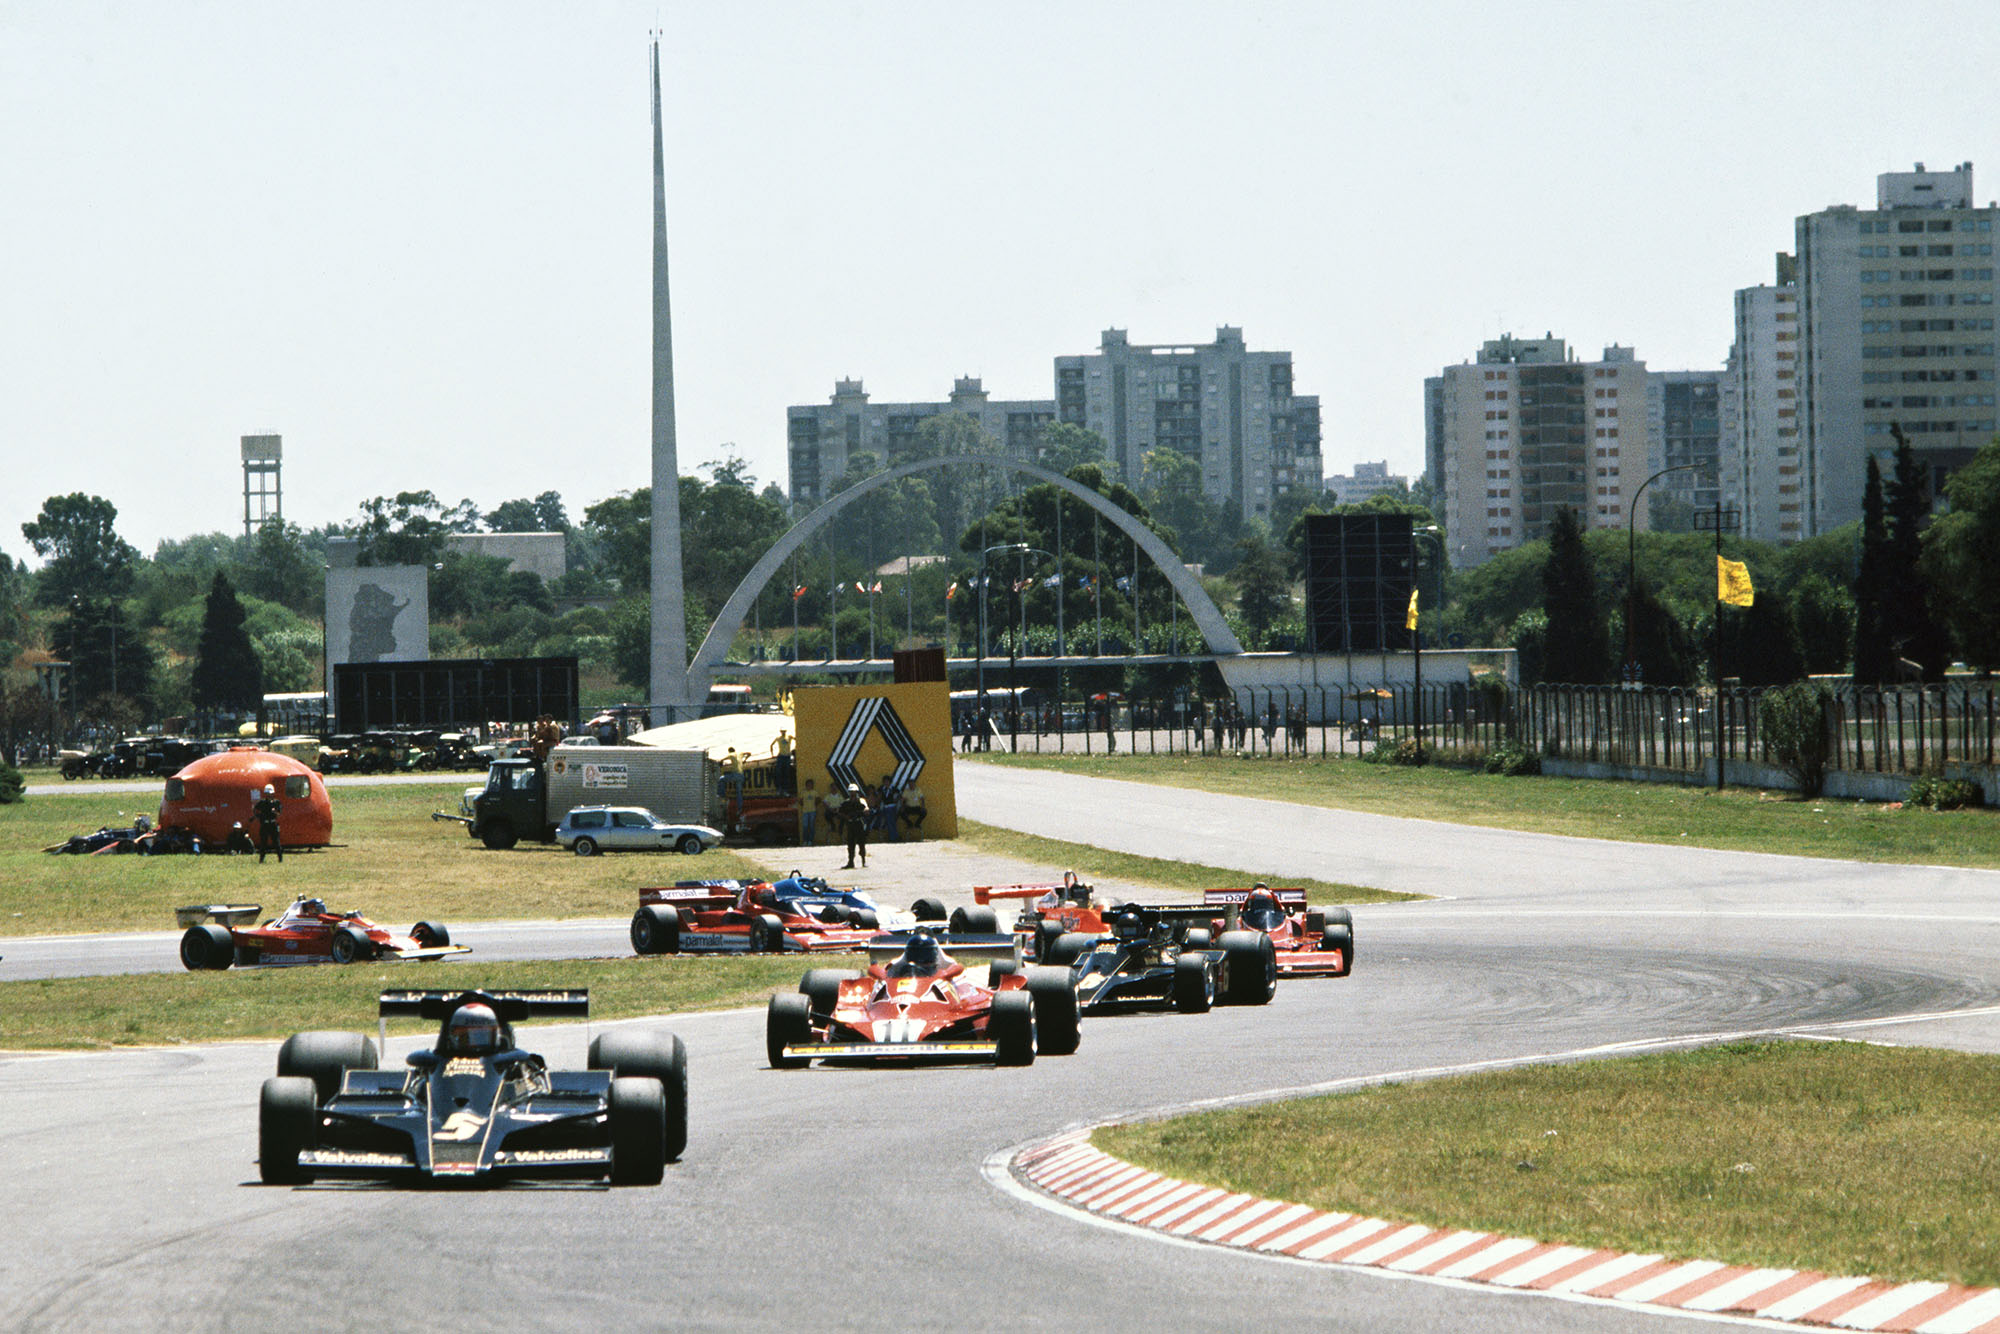 Mario Andretti (Lotus) leads the pack on the first lap of the 1978 Argentine Grand Prix, Buenos Aires.